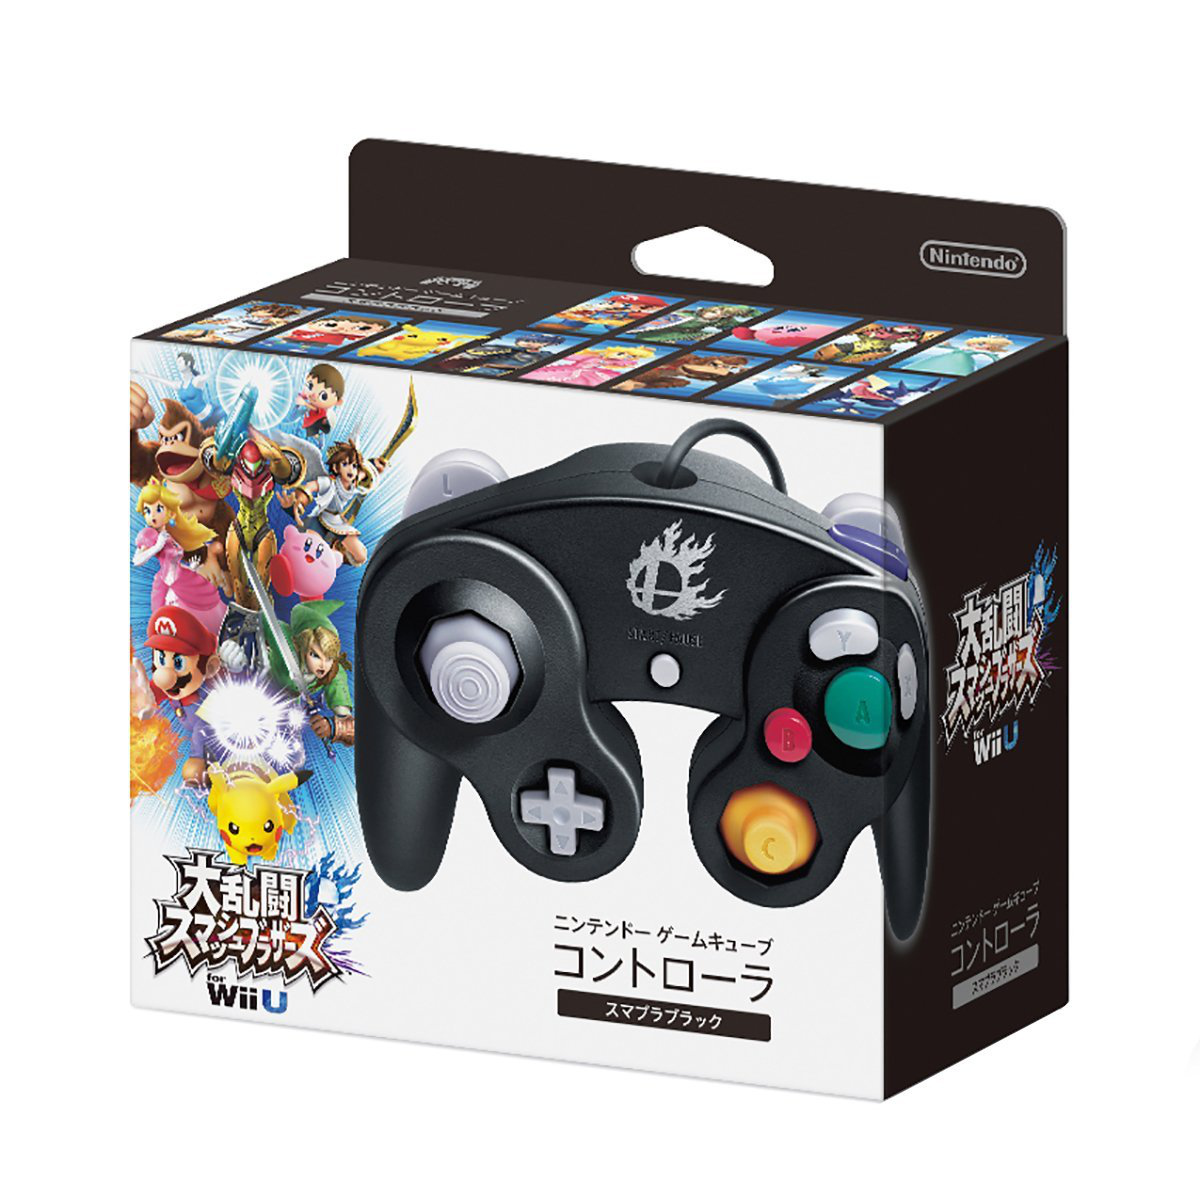 Le gamecube controller adapter ultra compatible - Console wii u super smash bros ...